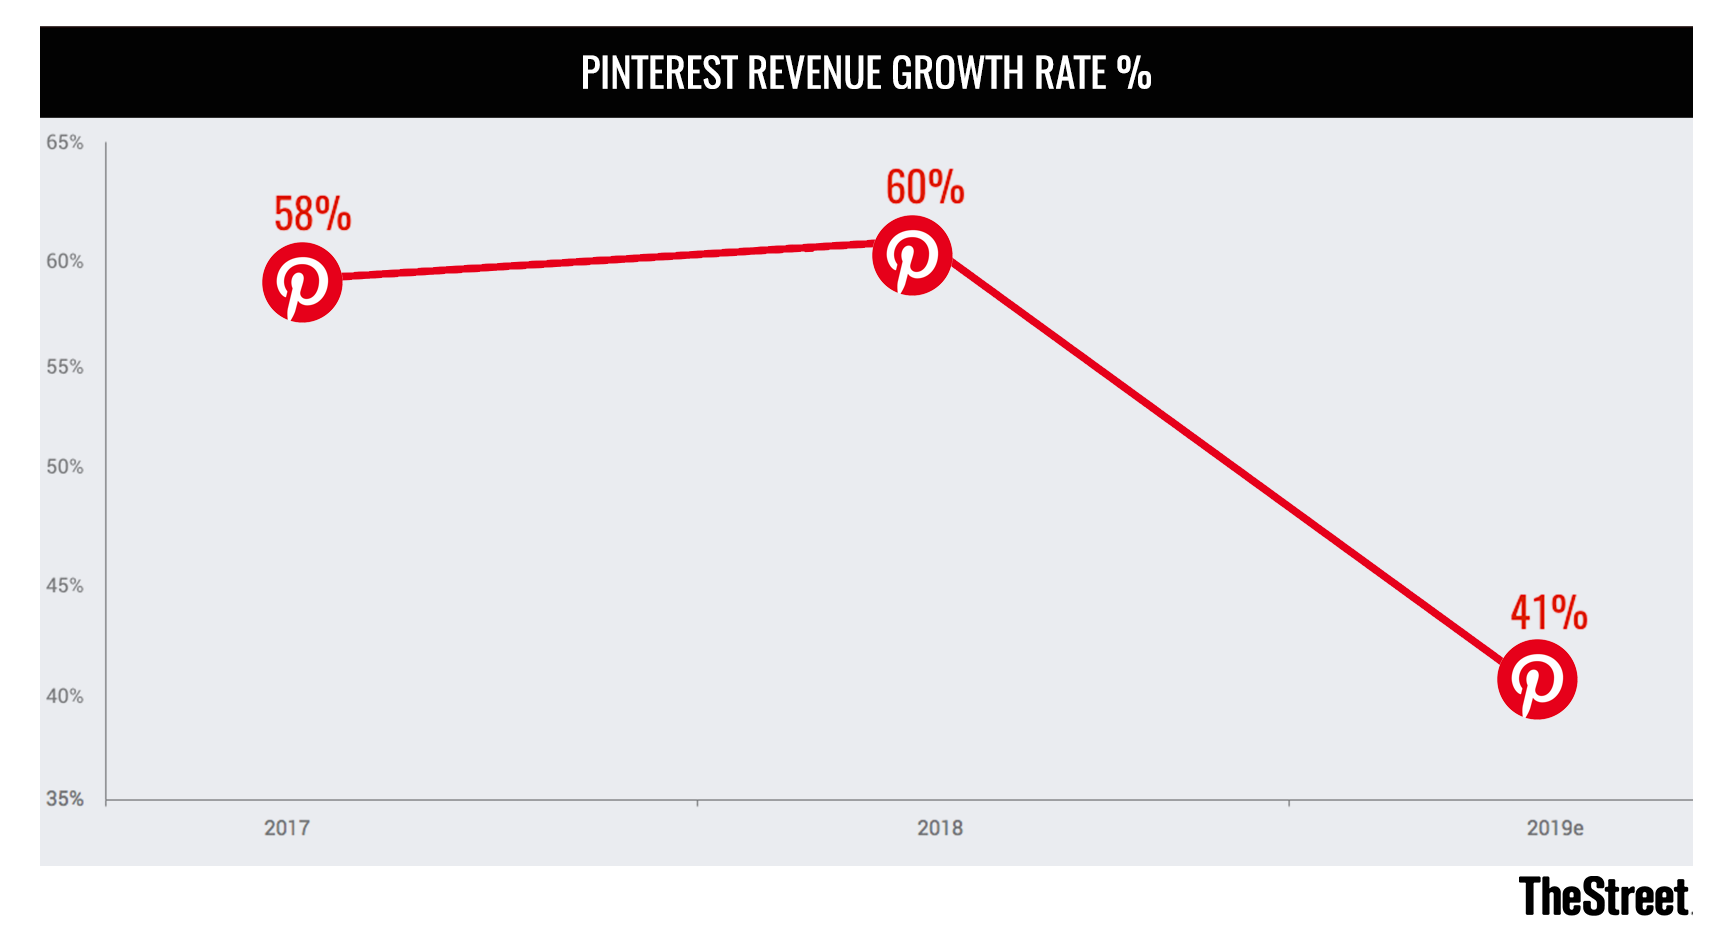 Interested in Pinterest? It's Probably Best to Move Along - TheStreet